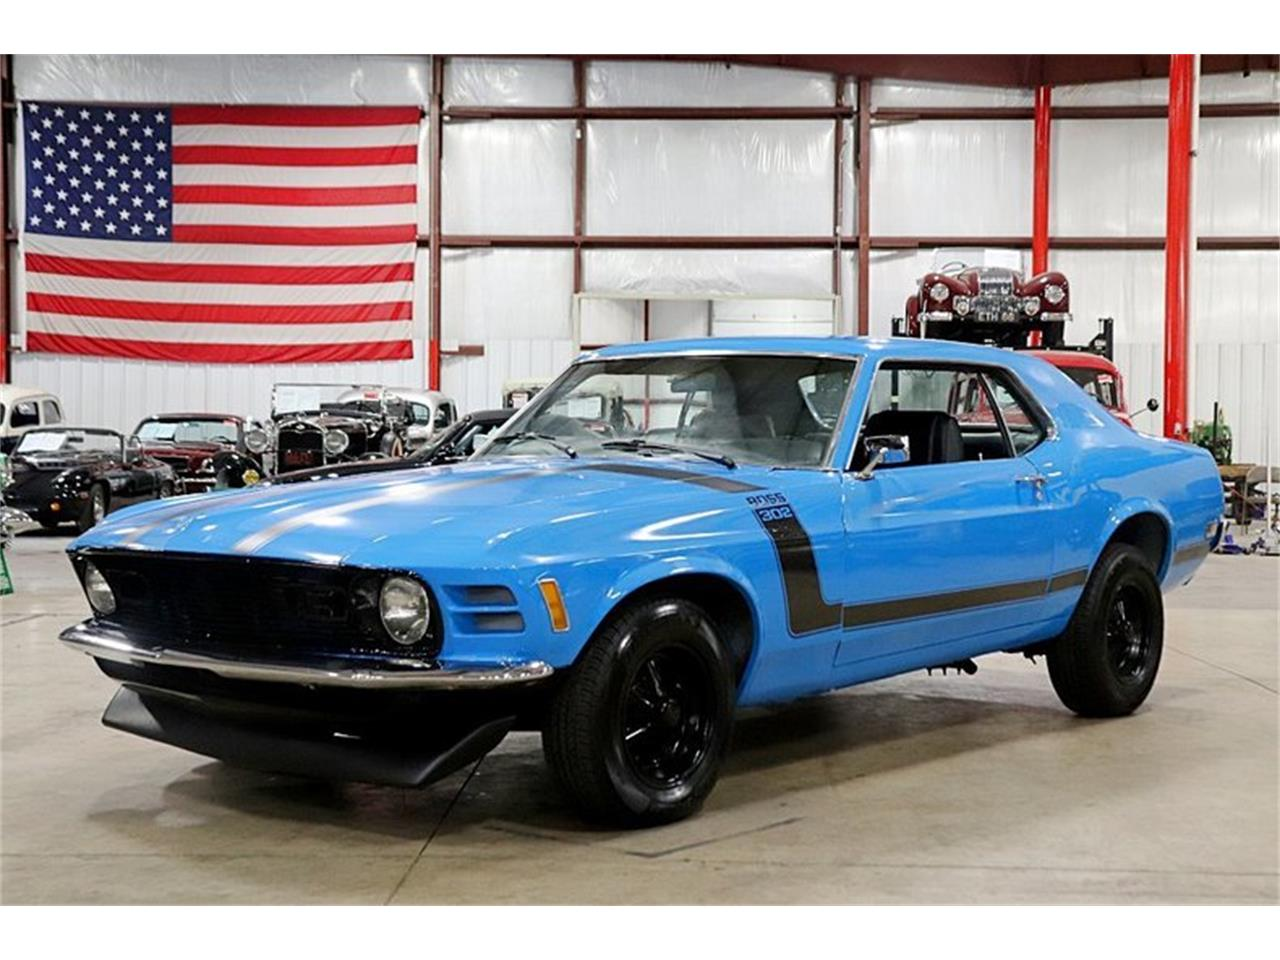 Ford Mustang Boss 302 1970 prix tout compris 1970